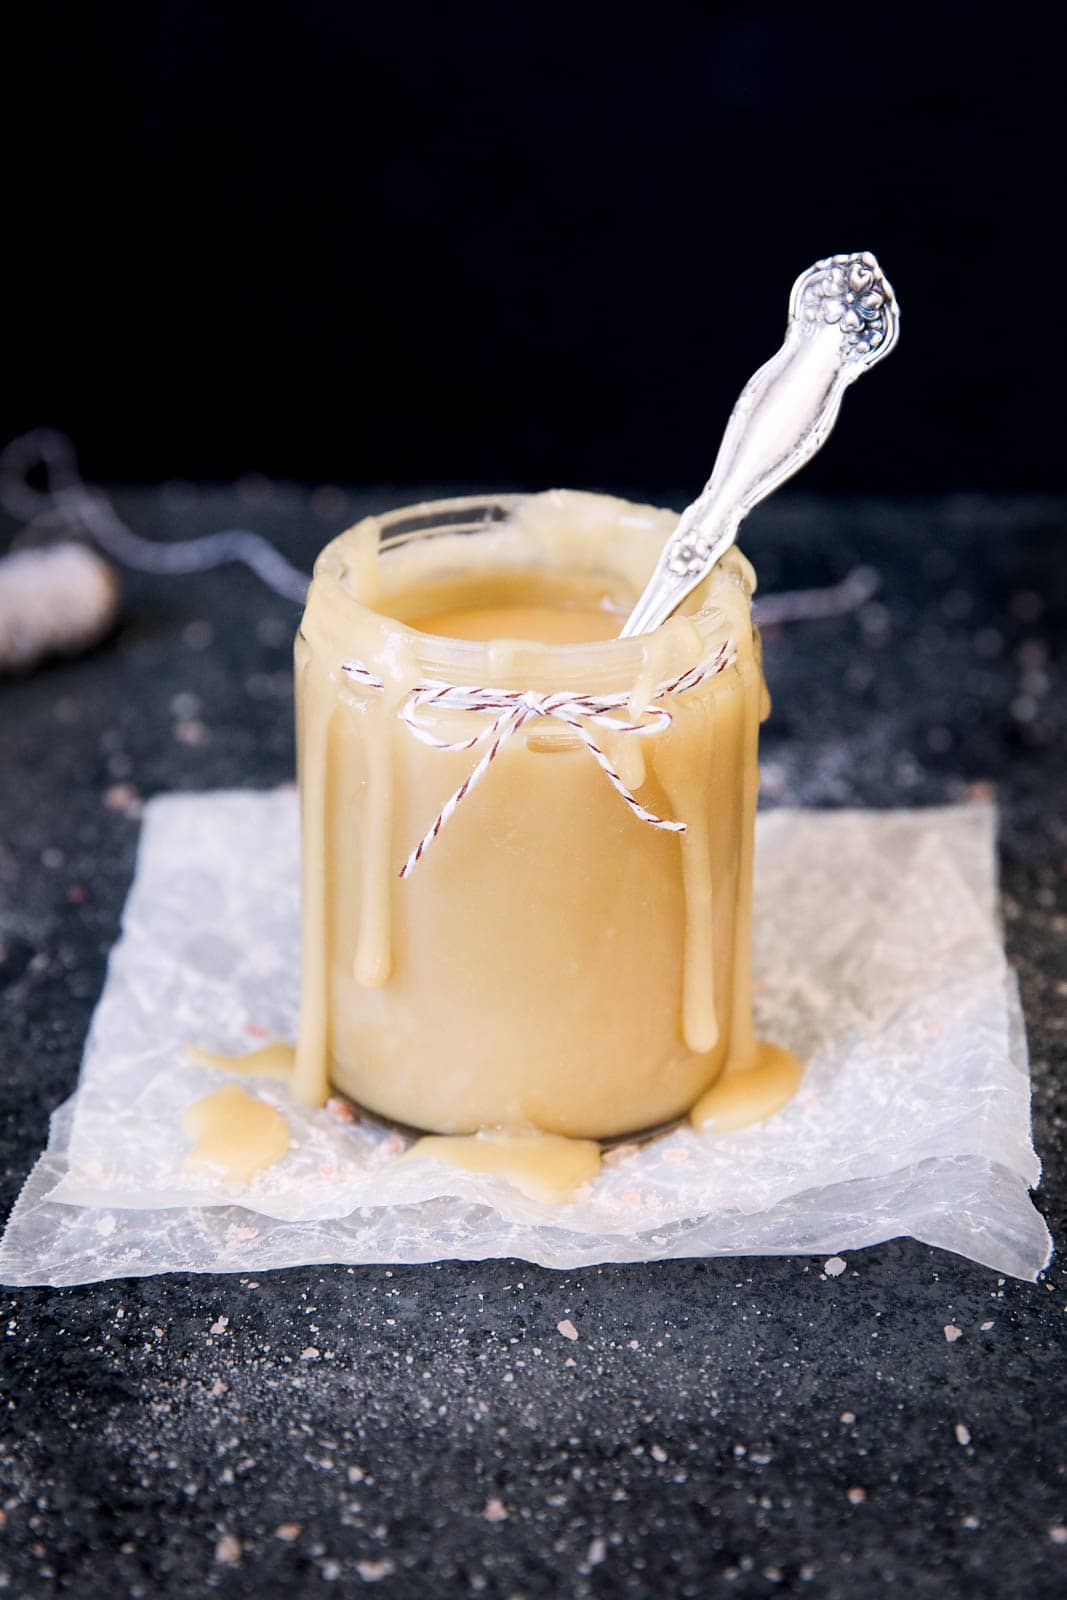 maple salted caramel sauce in a jar with spoon